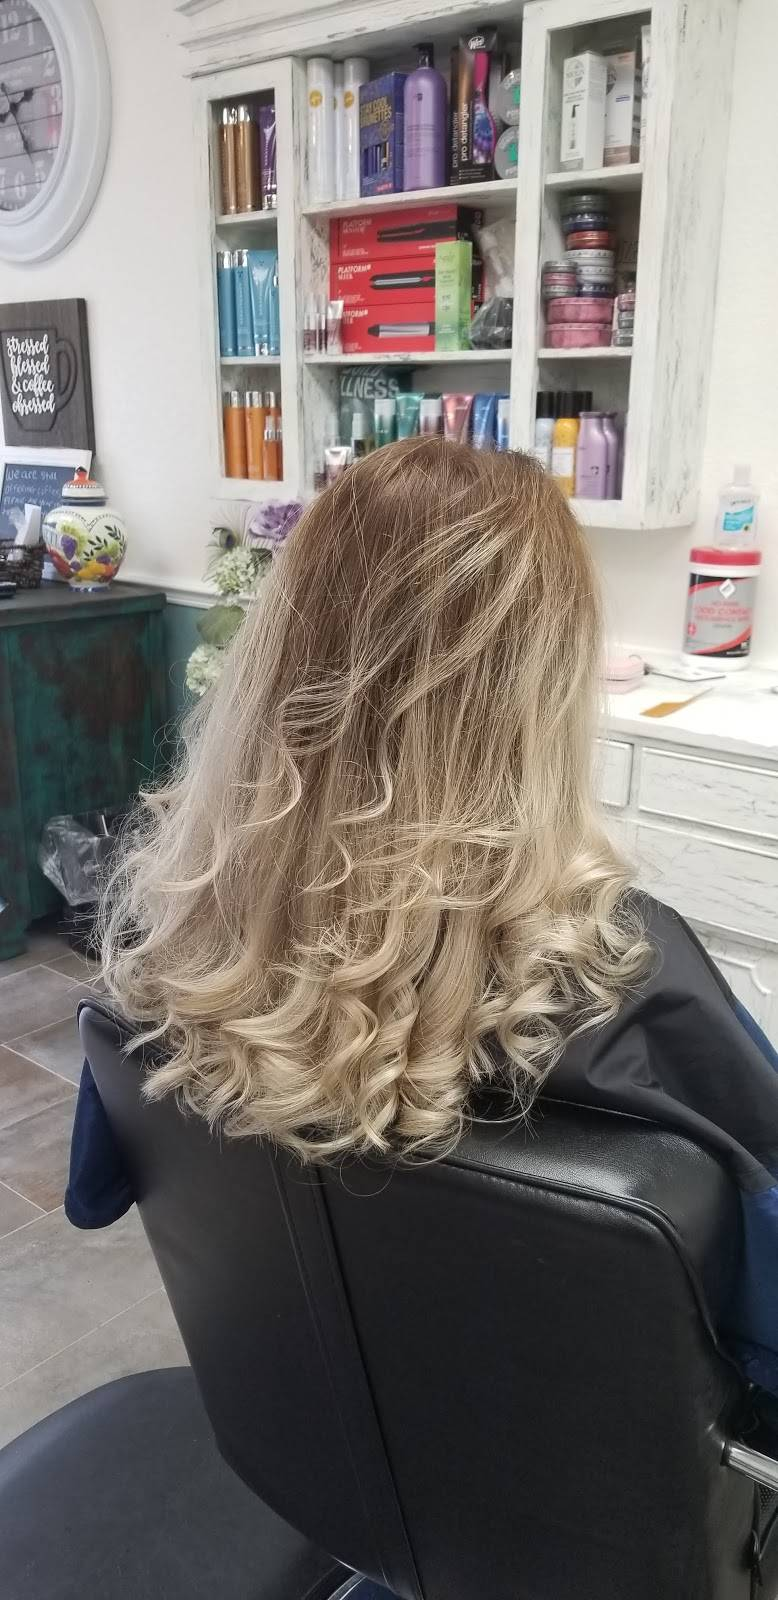 Pavone Salon & Spa - hair care  | Photo 4 of 9 | Address: 6151 Central Ave, St. Petersburg, FL 33710, USA | Phone: (727) 256-0475